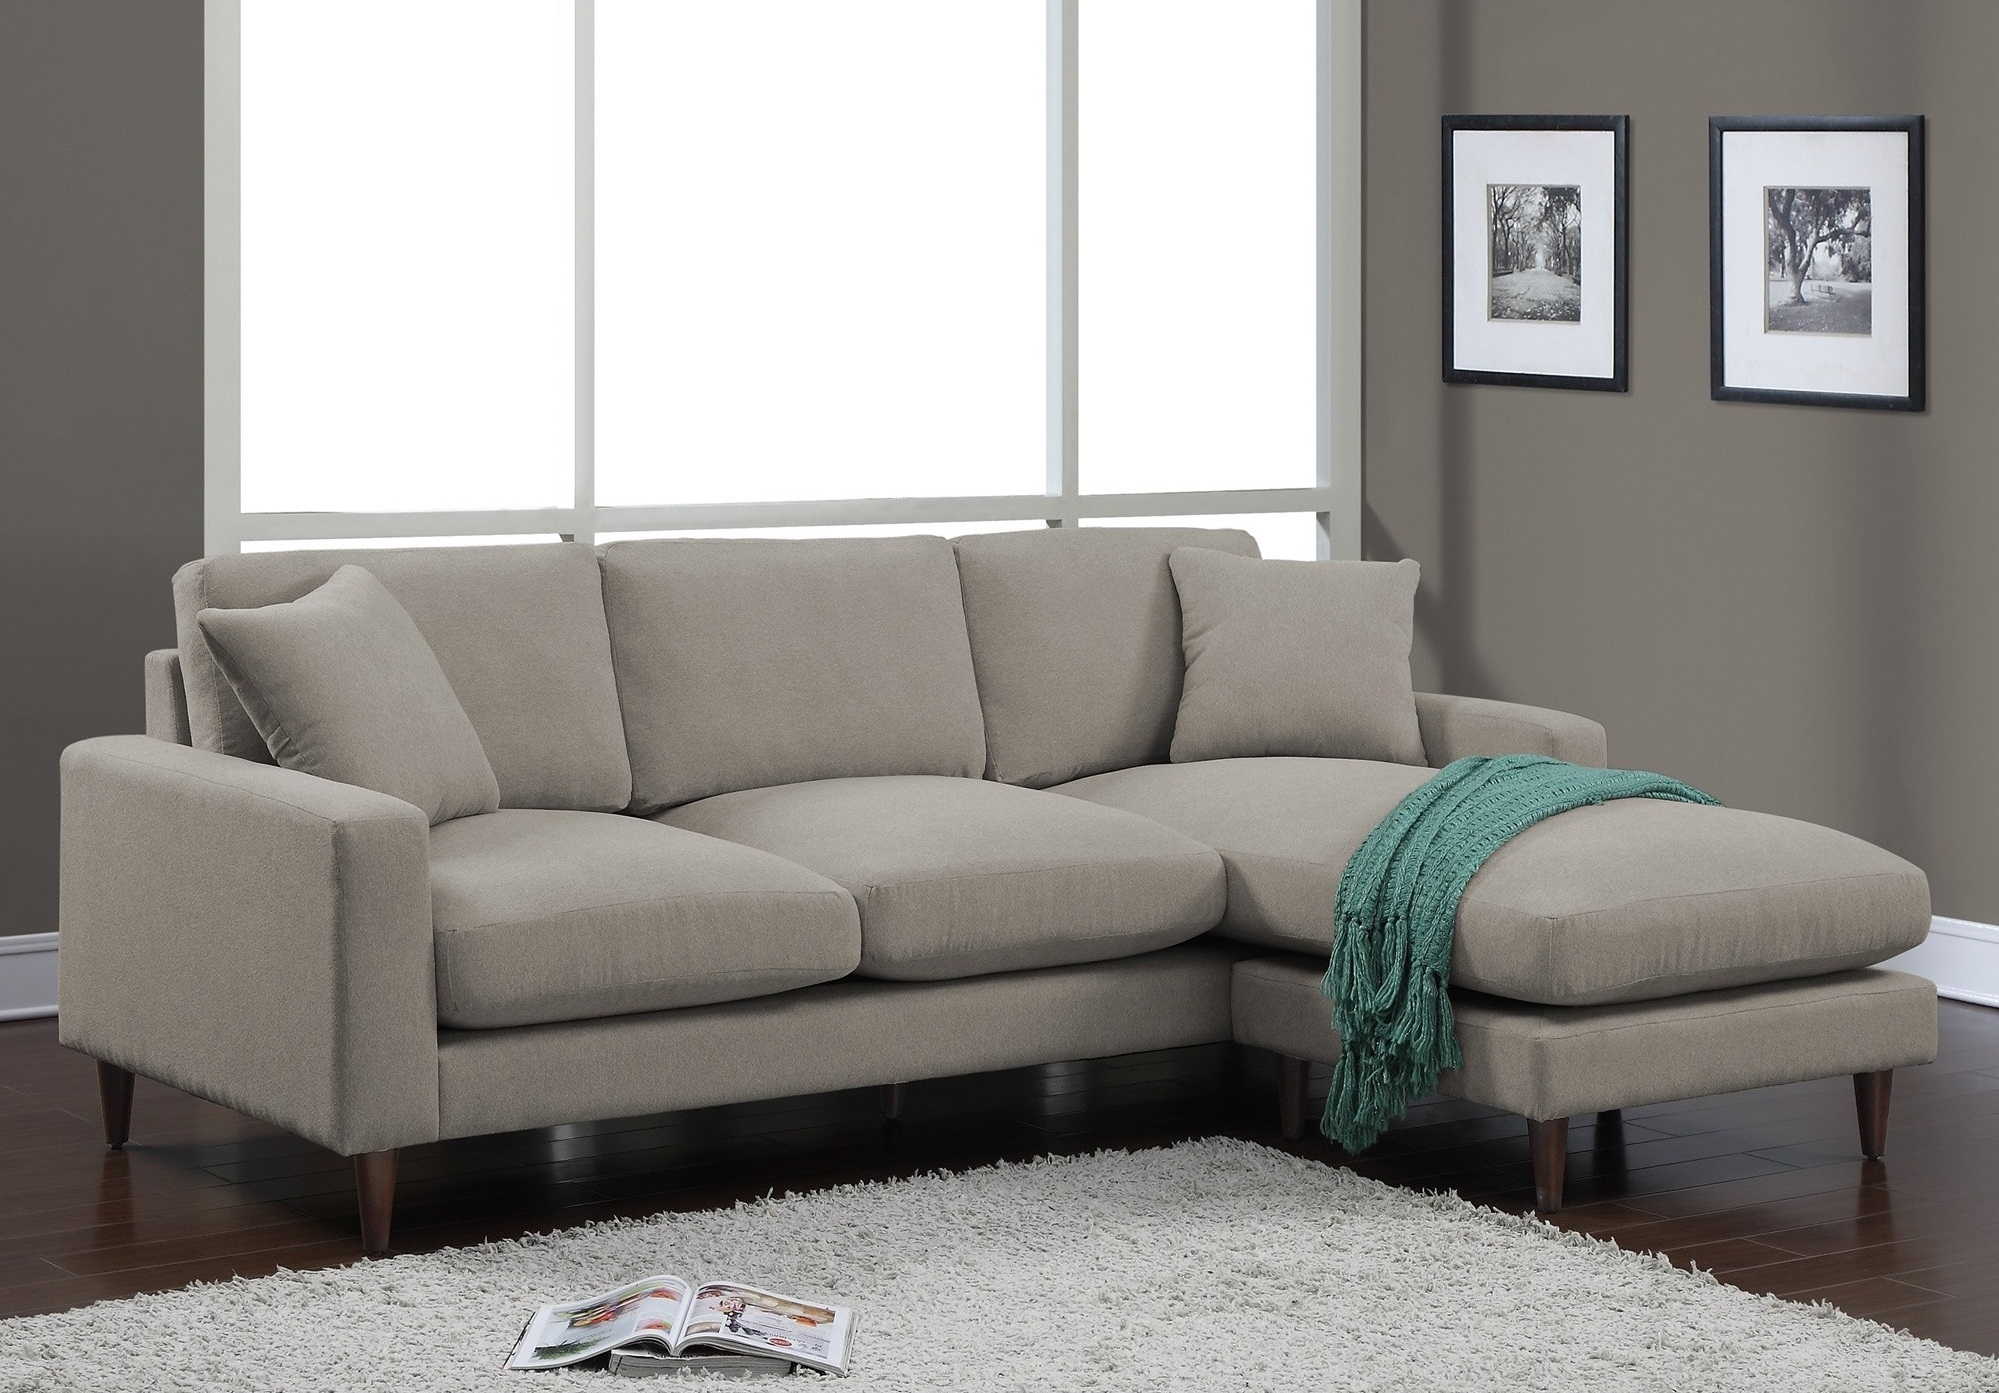 Lovable Sleeper Sofa With Chaise Lounge Alluring Living Room Within Target Sectional Sofas (Image 8 of 10)